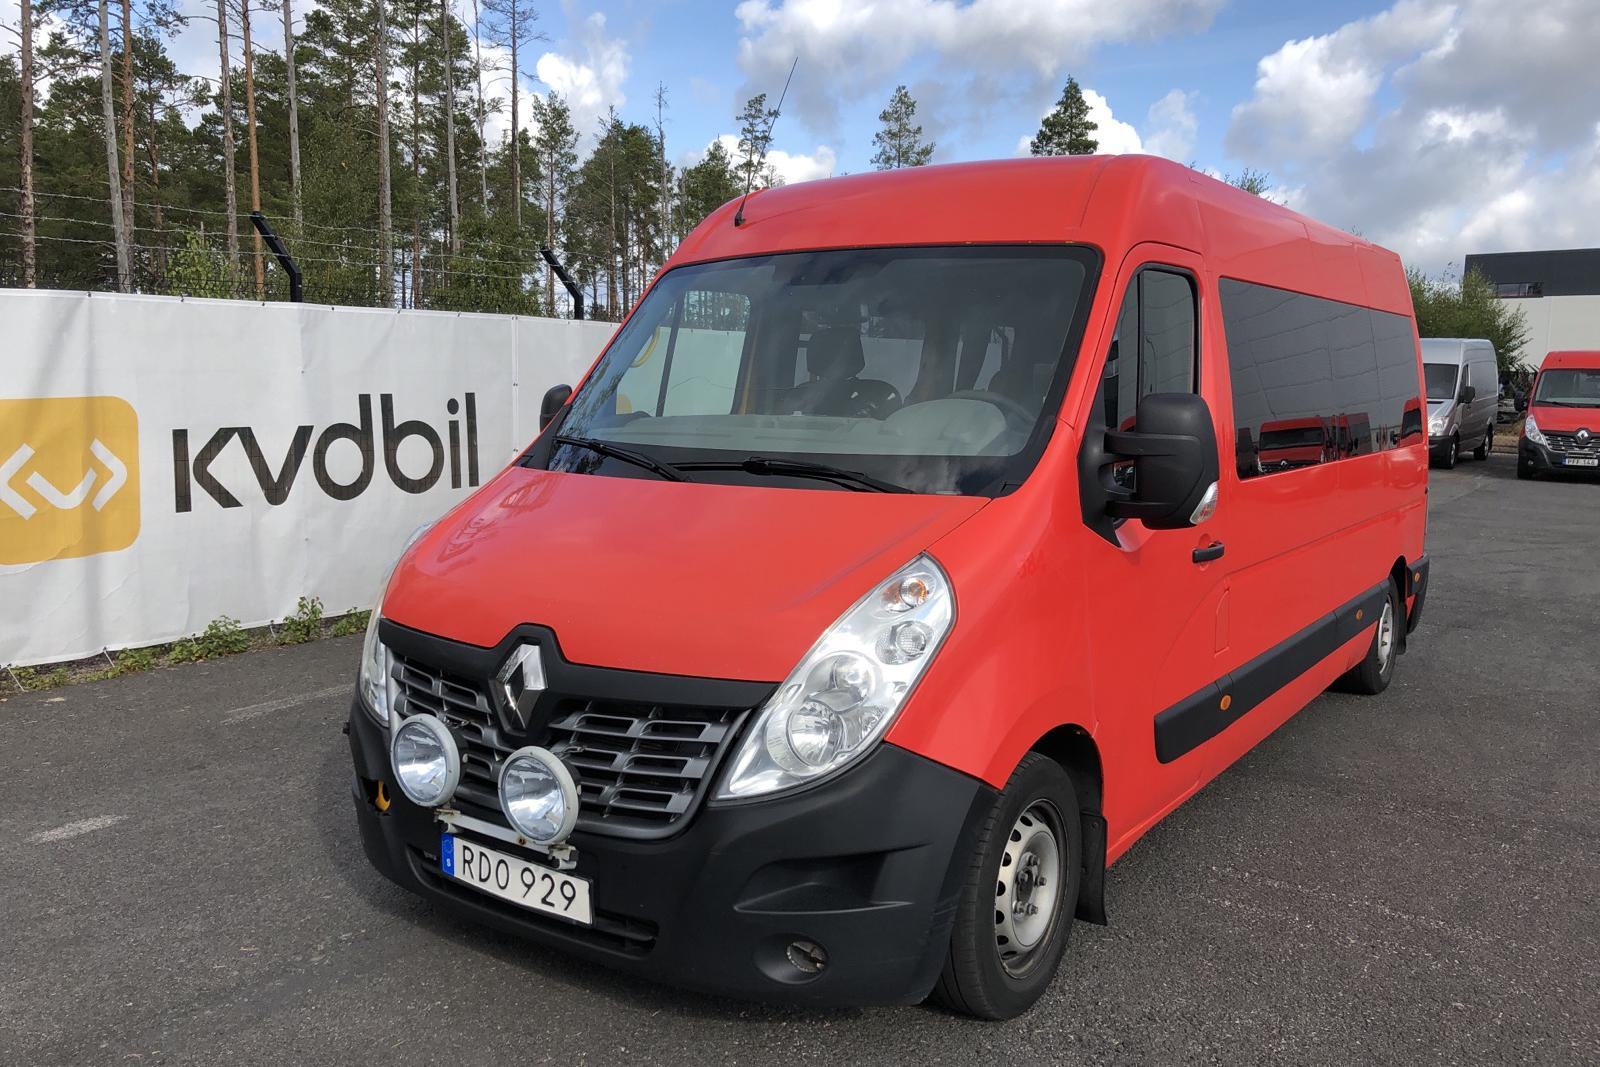 Renault Master 2.3 dCi Pickup/Chassi 2WD (145hk) - 364 920 km - Manual - Light Red - 2016